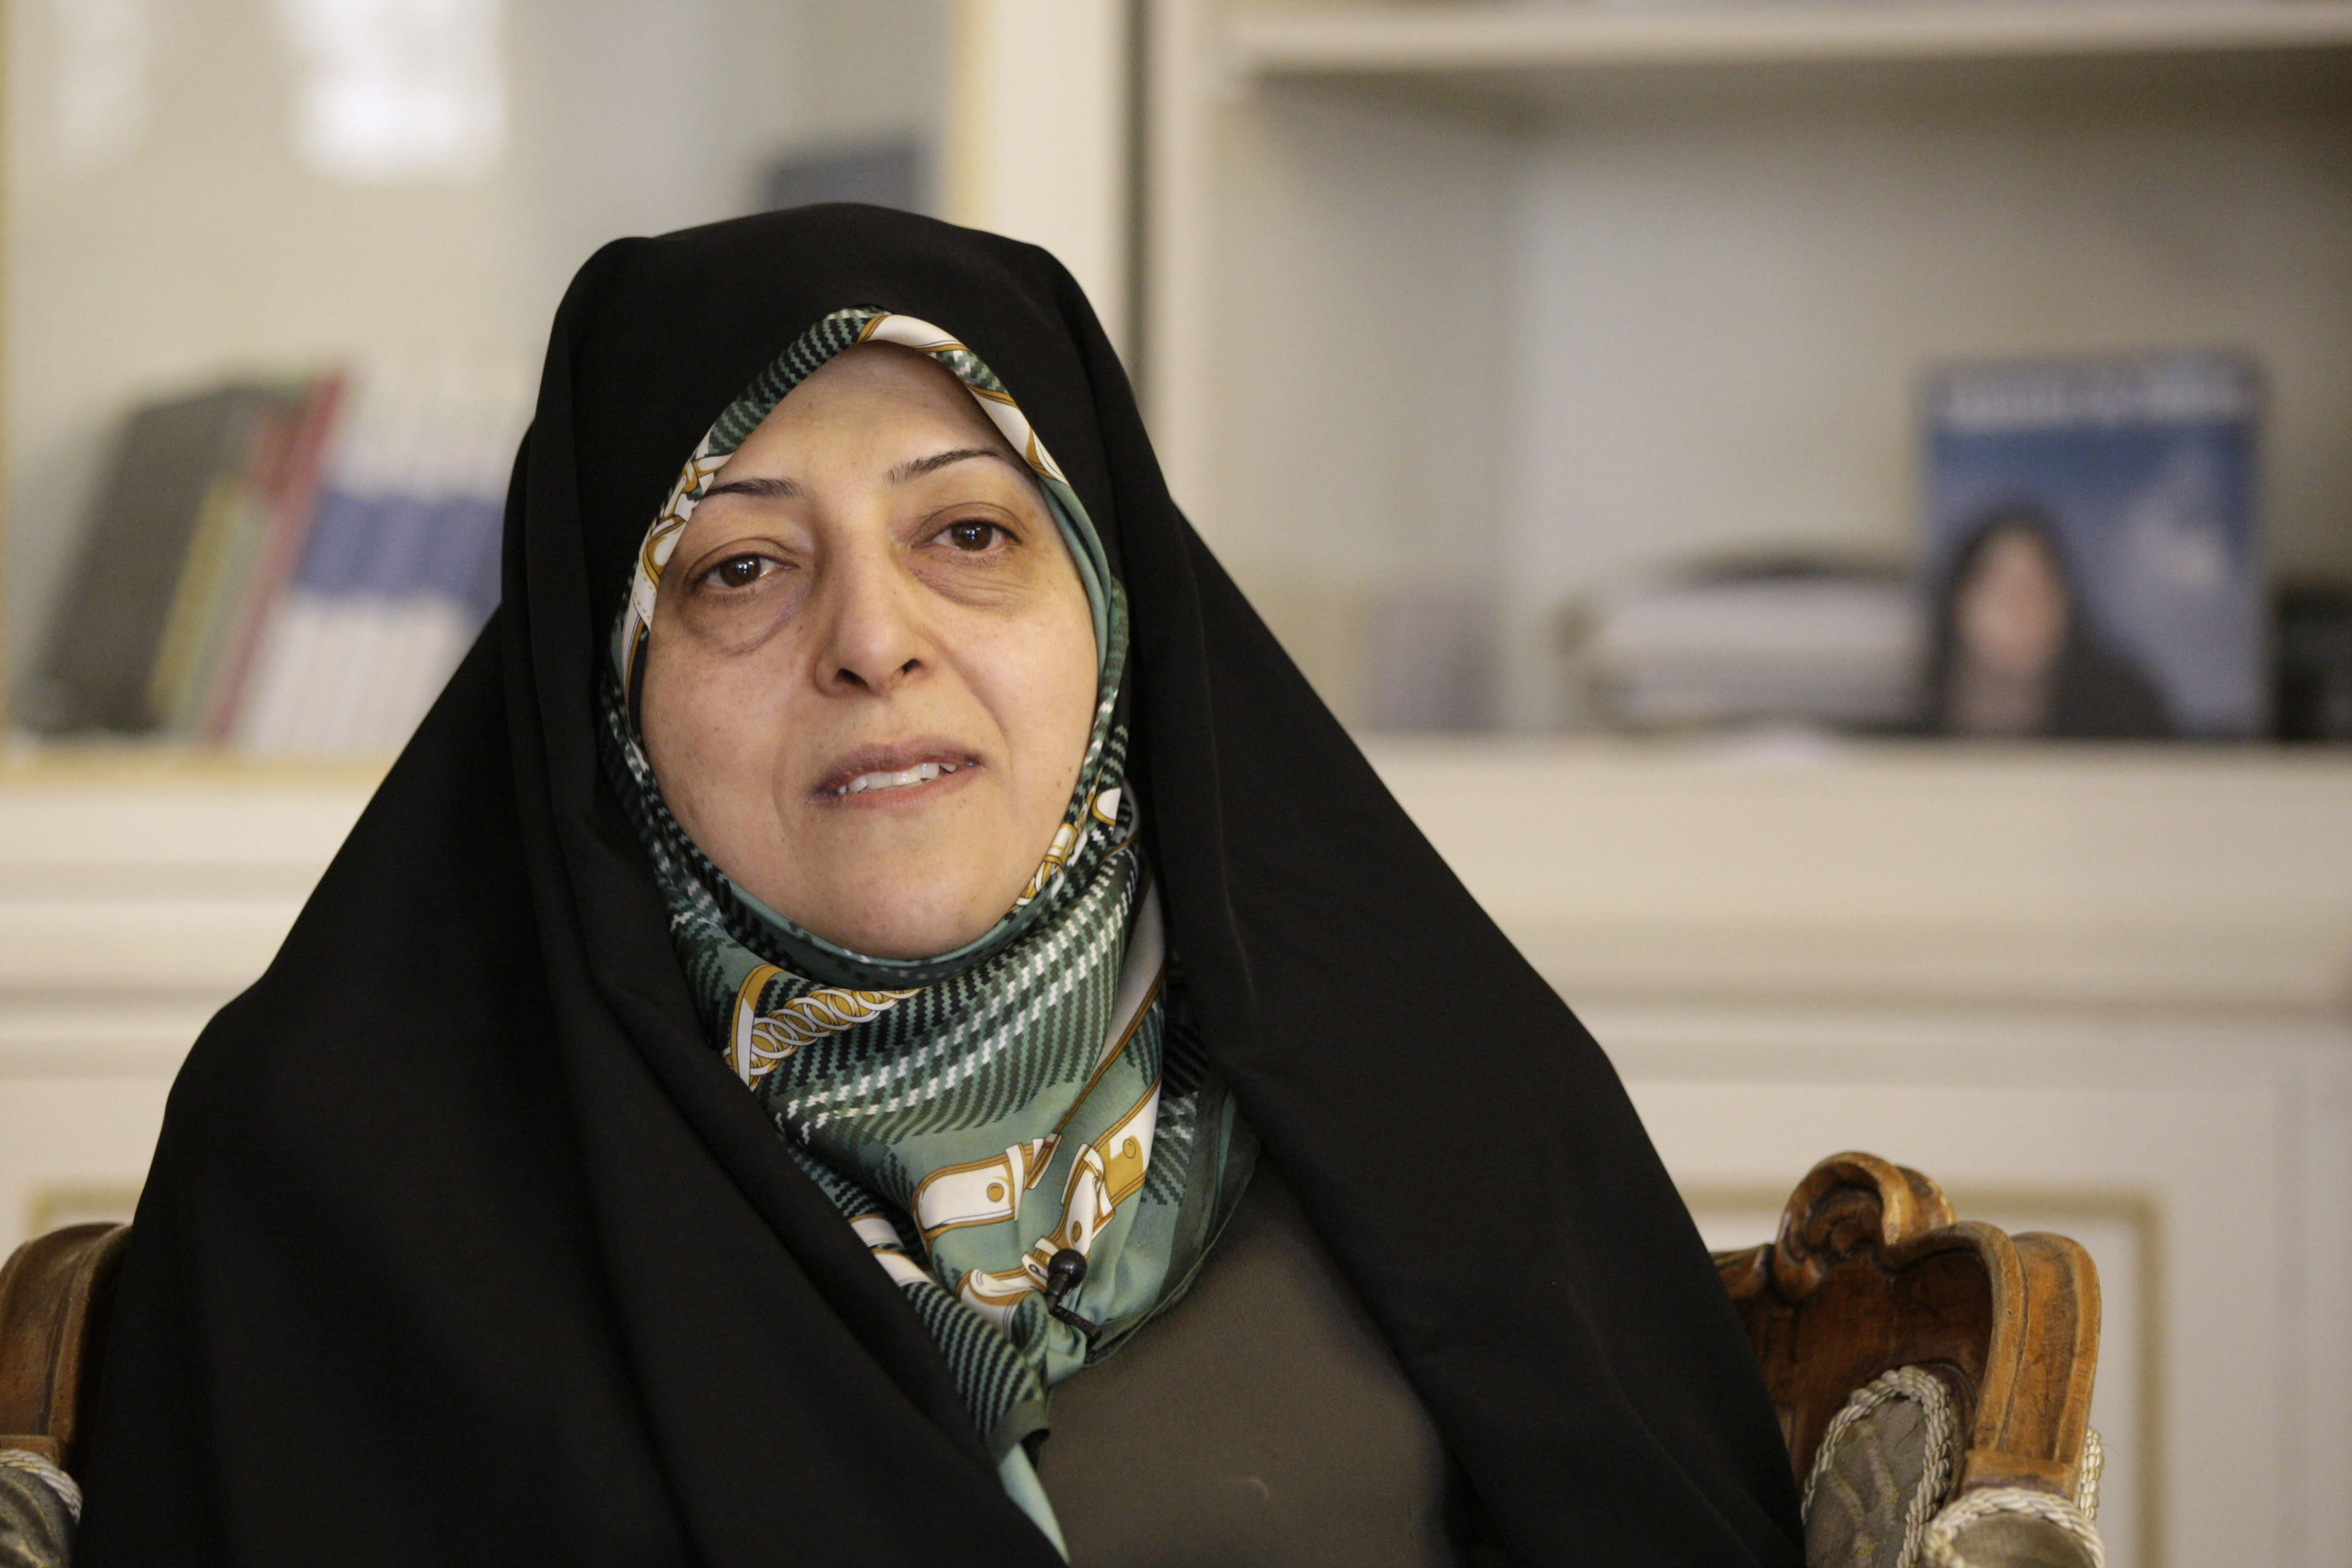 FILE - In this Feb. 14, 2013 file photo, Iranian Vice-President Masoumeh Ebtekar gives an interview to The Associated Press, in Tehran, Iran. On Thursday, Feb. 27, 2020, the English-language IRAN daily newspaper via its Twitter account, said Masoumeh Ebtekar, a vice president in the Islamic Republic and a spokeswoman for the 1979 hostage-takers, has the new coronavirus. (AP Photo/Vahid Salemi, File)